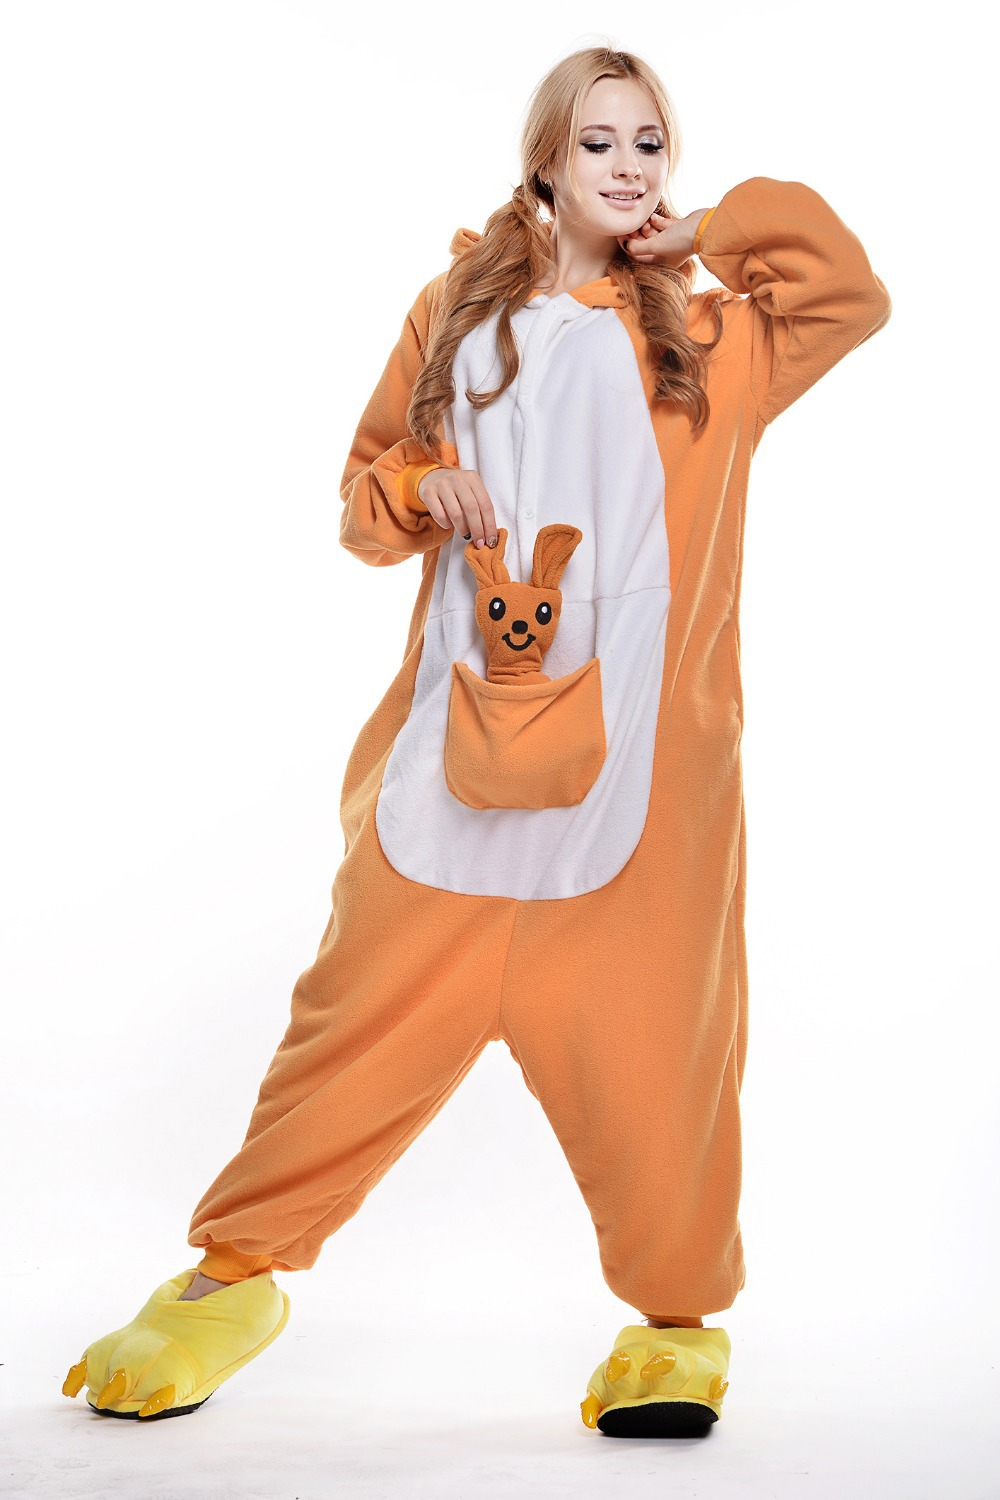 Aliexpress.com : Buy Kangaroo Carnival Costume/ Adult Fancy ...